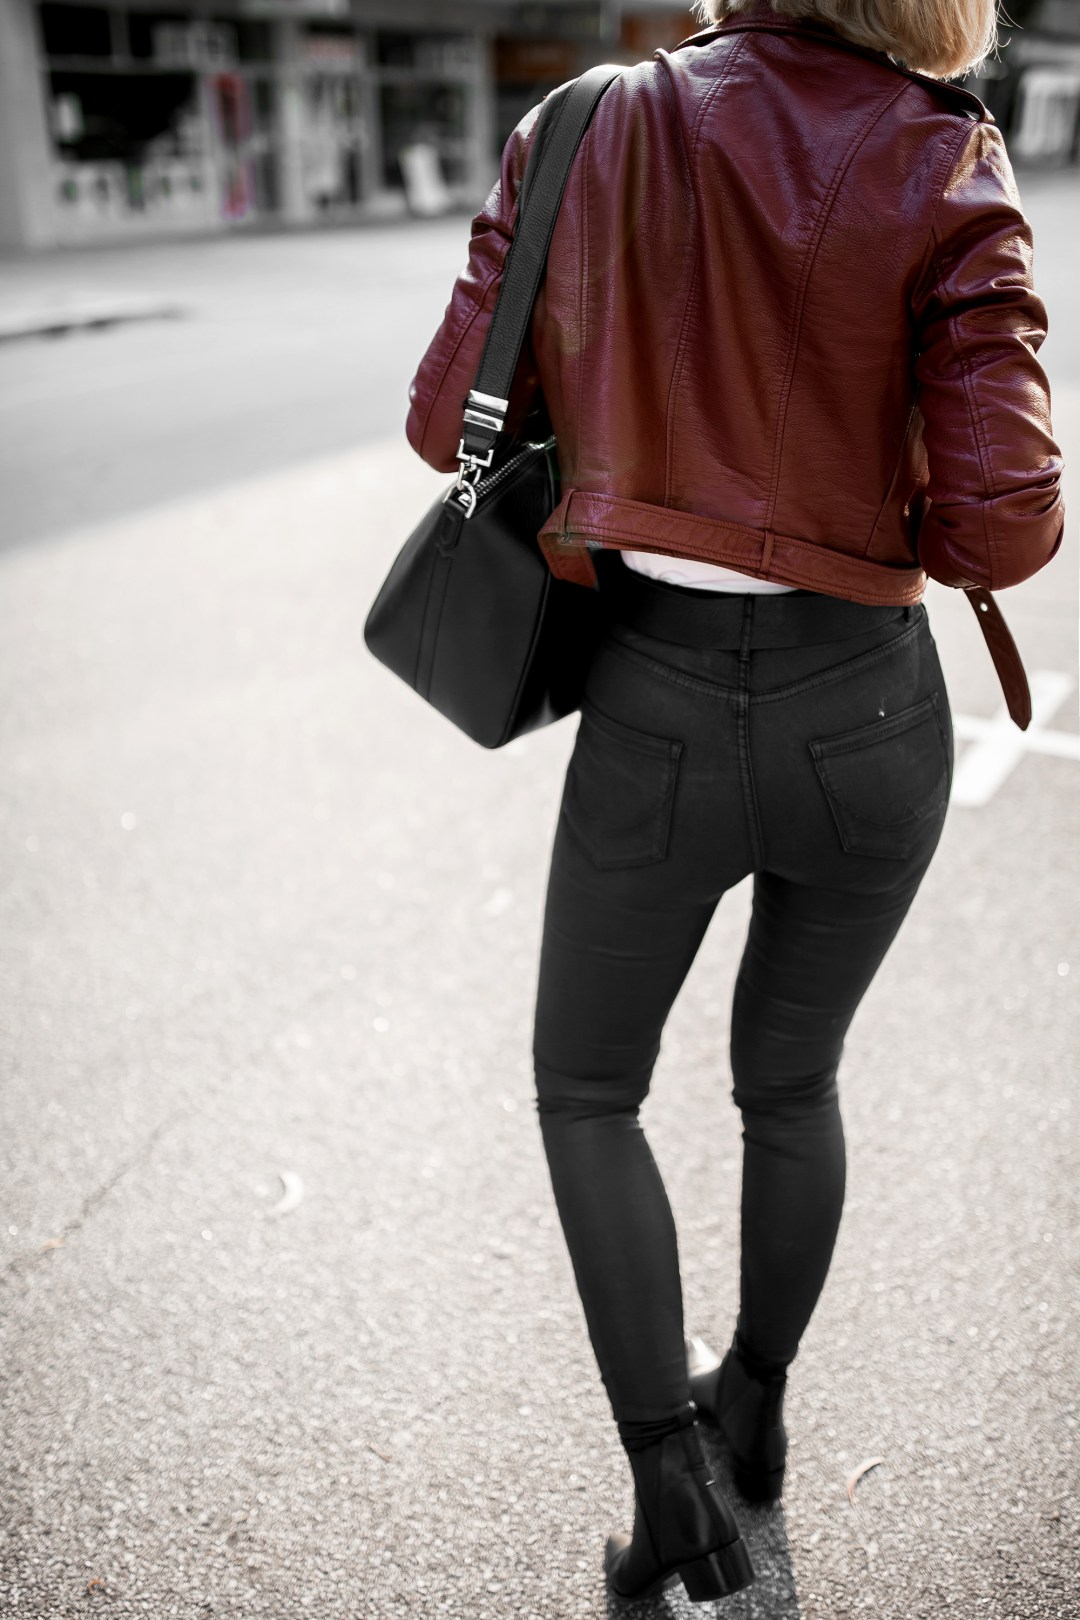 superdry-high-waisted-skinny-jeans-double-jacket-layer-outfit-inspiration-15-copy